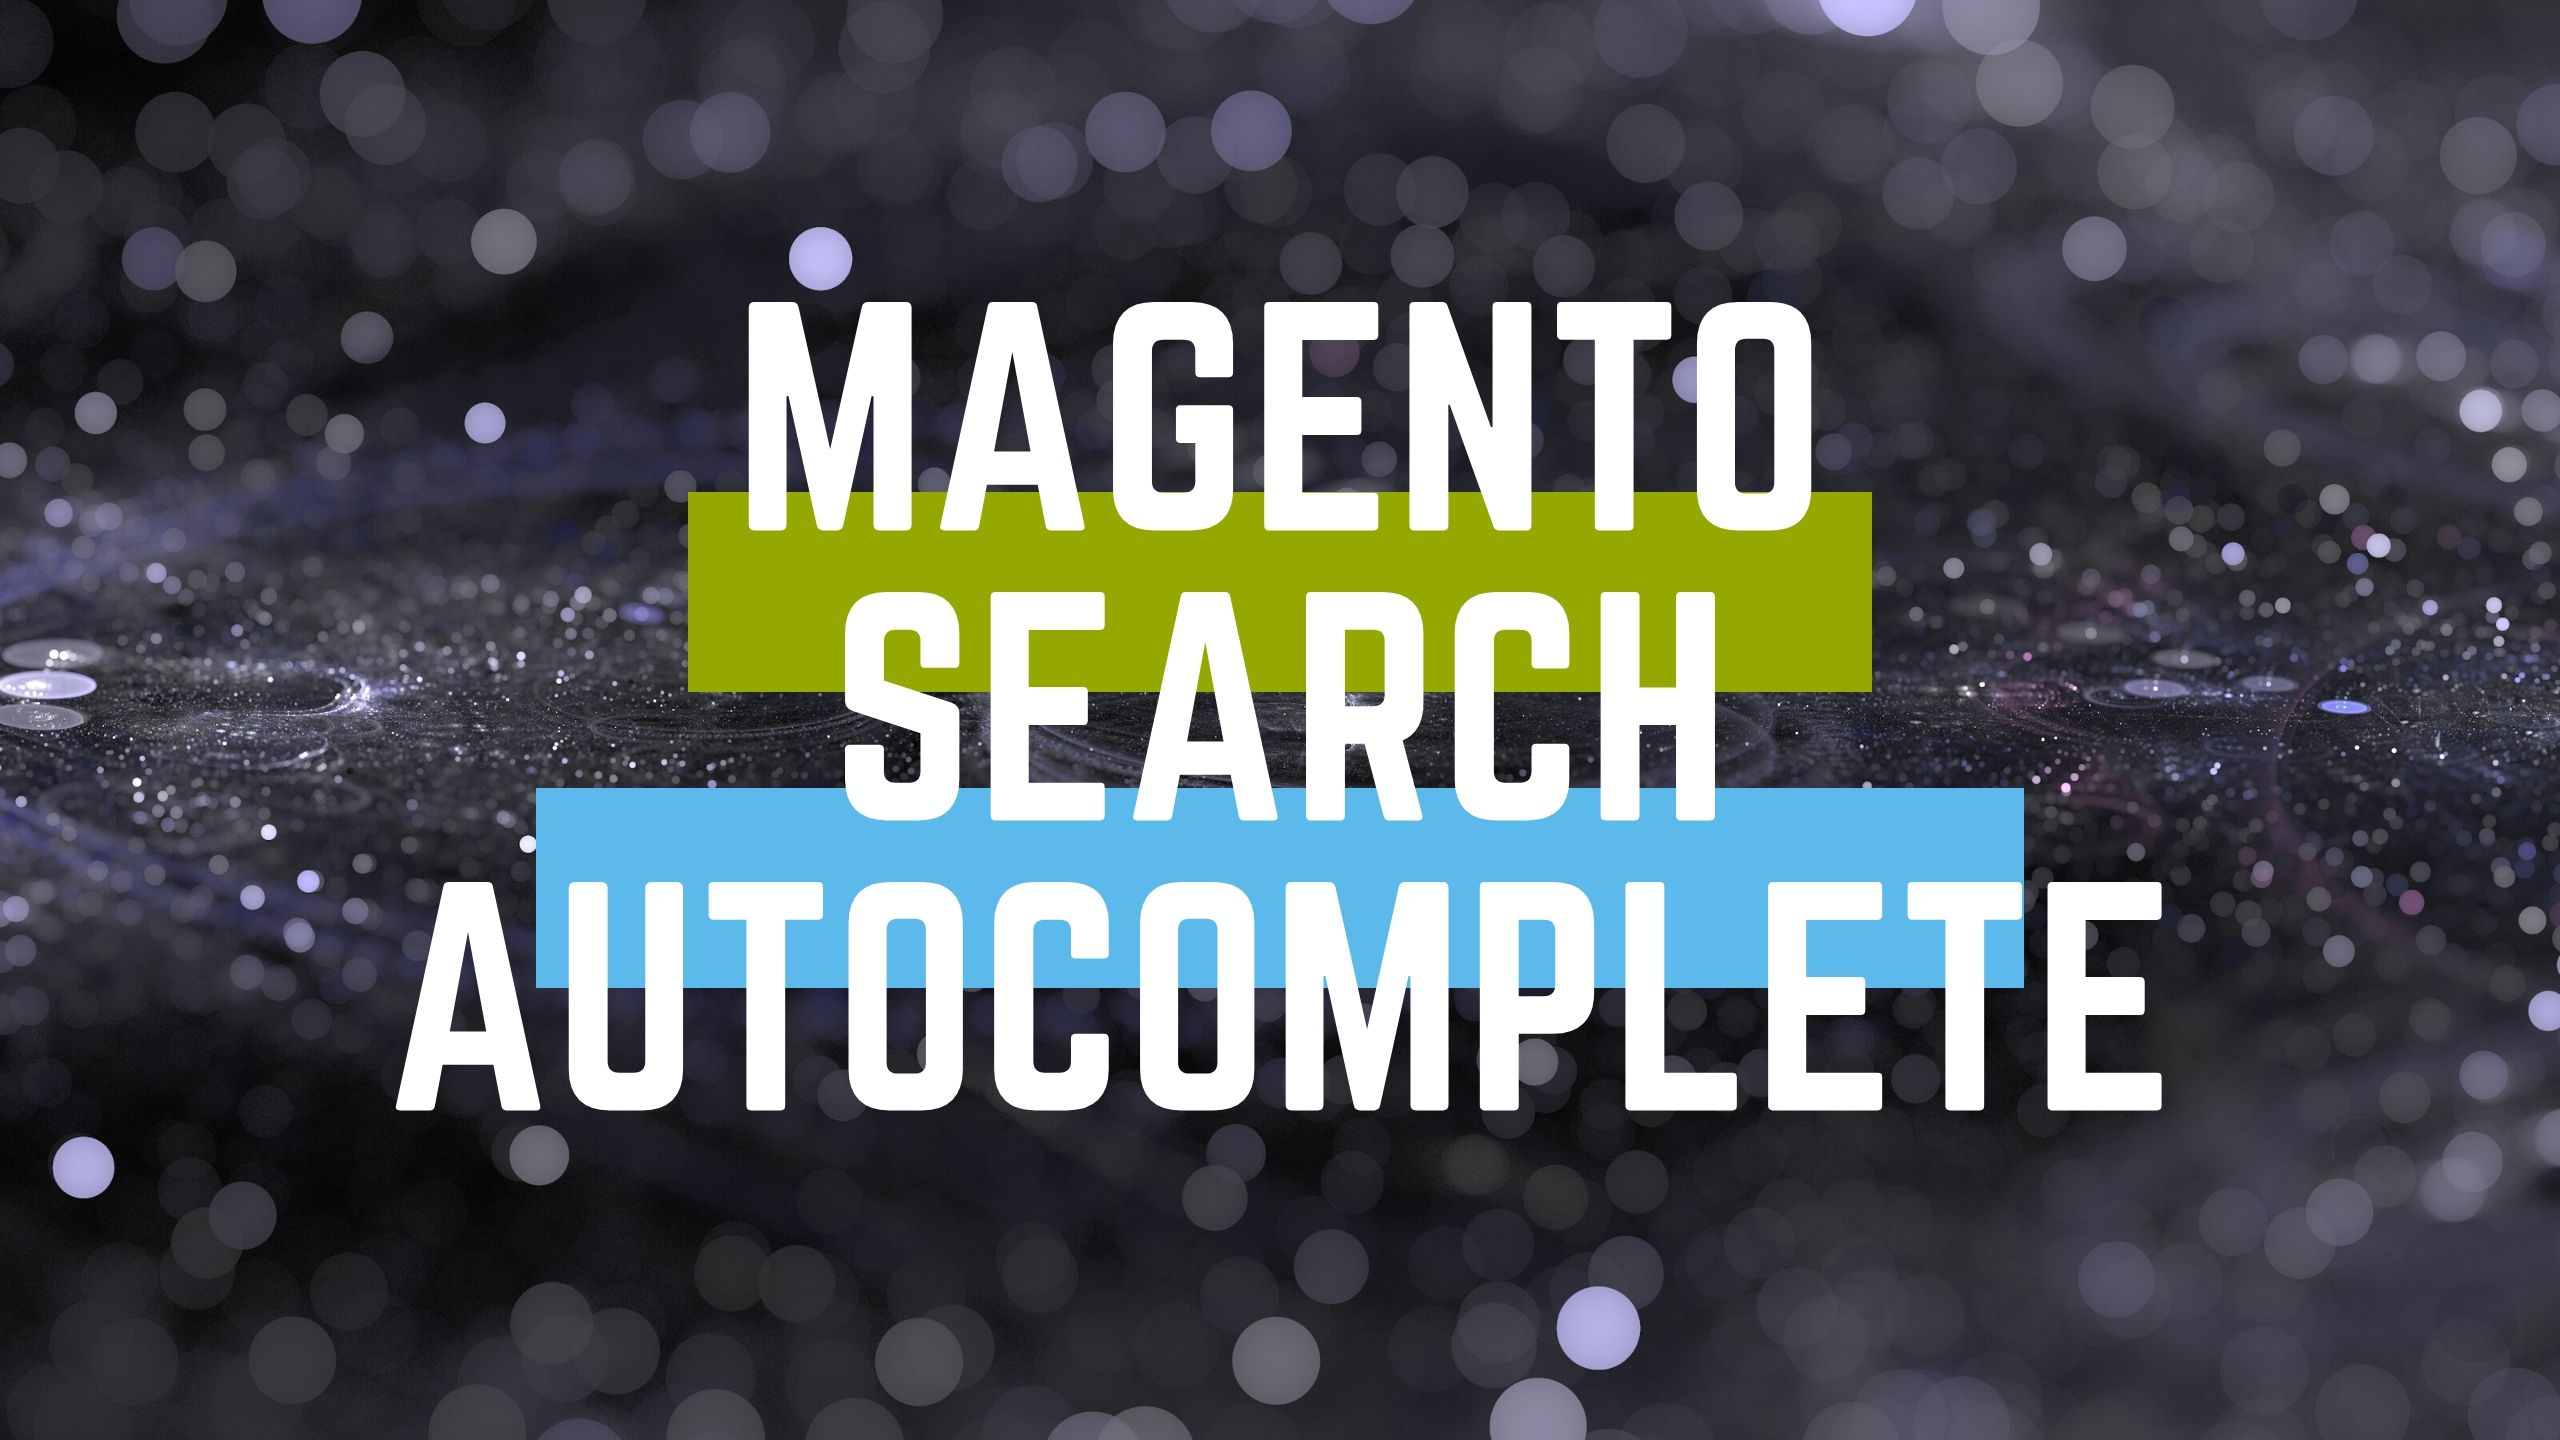 magento search autocomplete